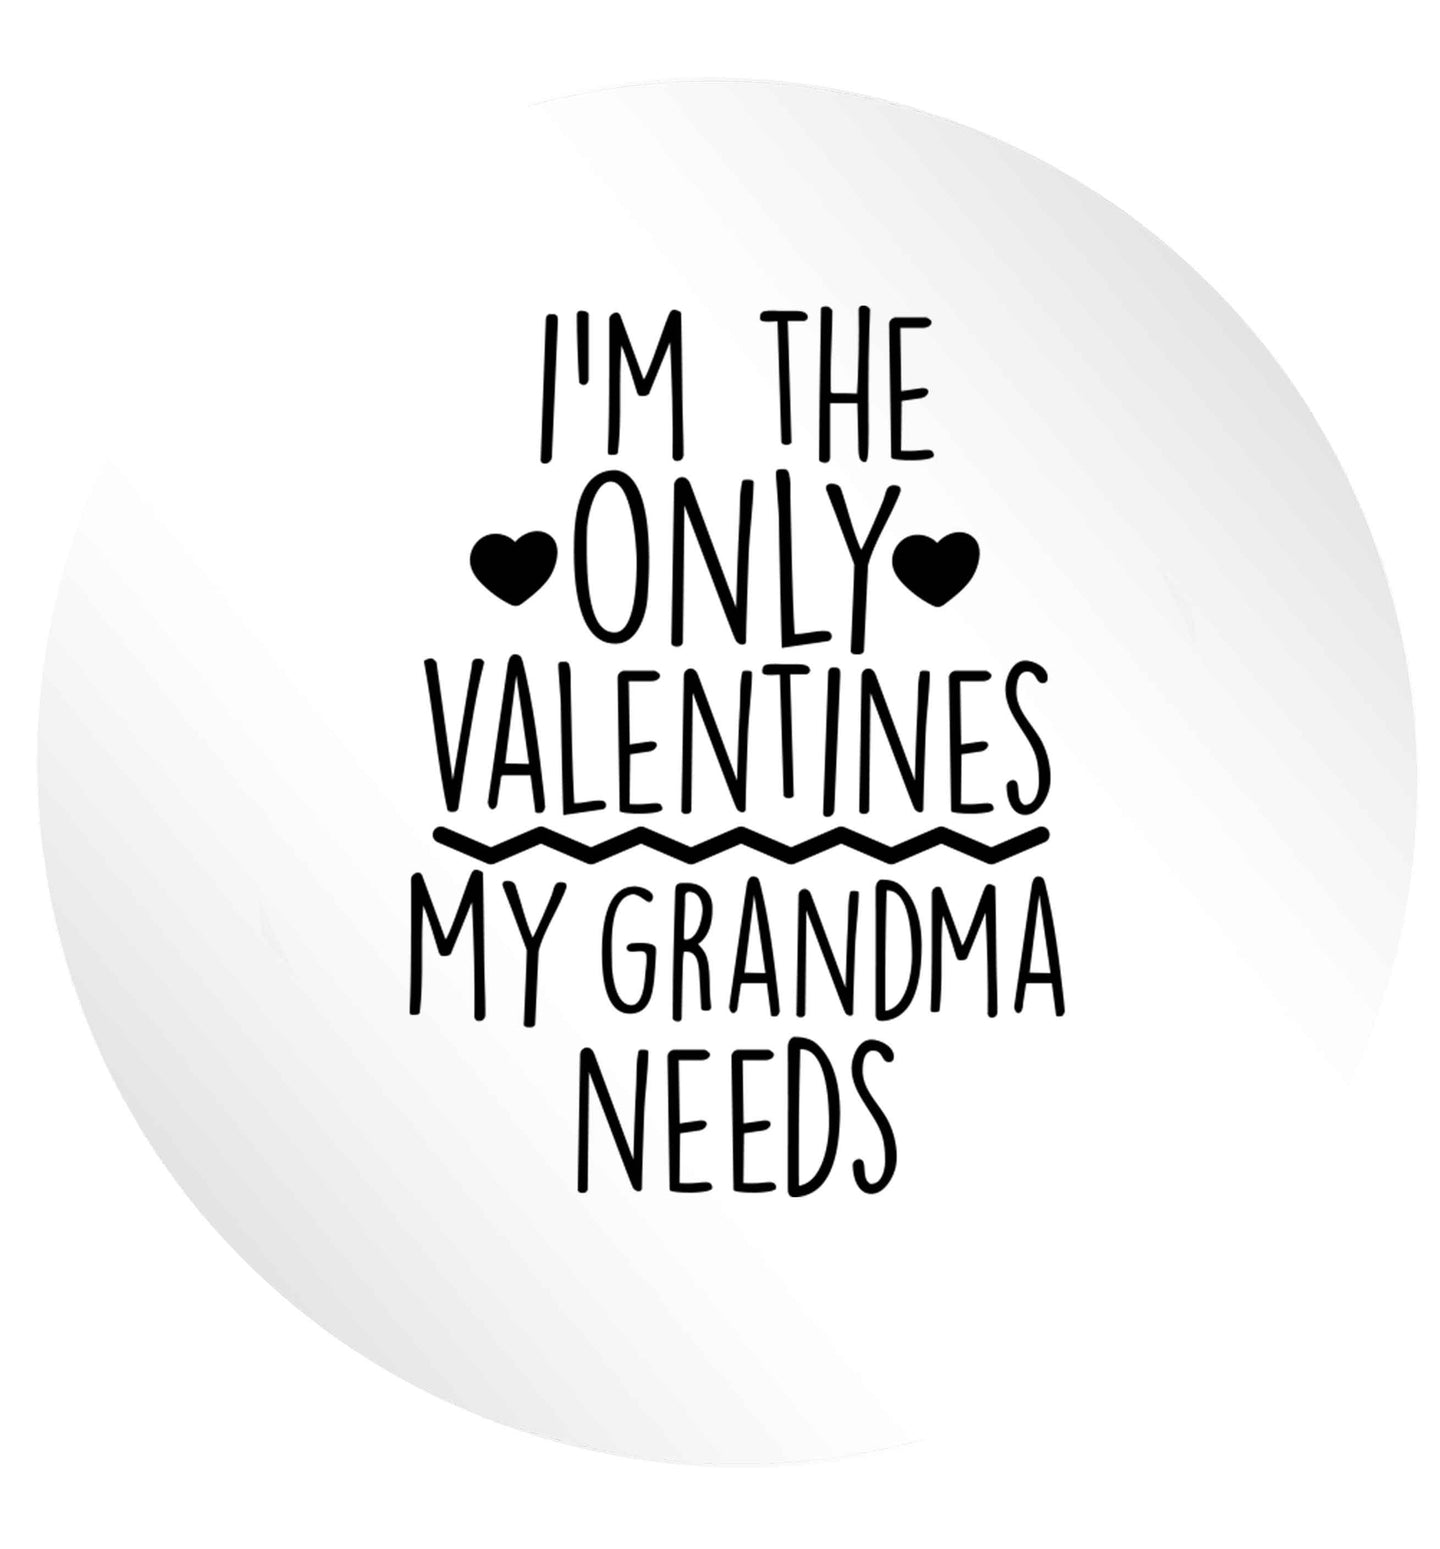 I'm the only valentines my grandma needs 24 @ 45mm matt circle stickers